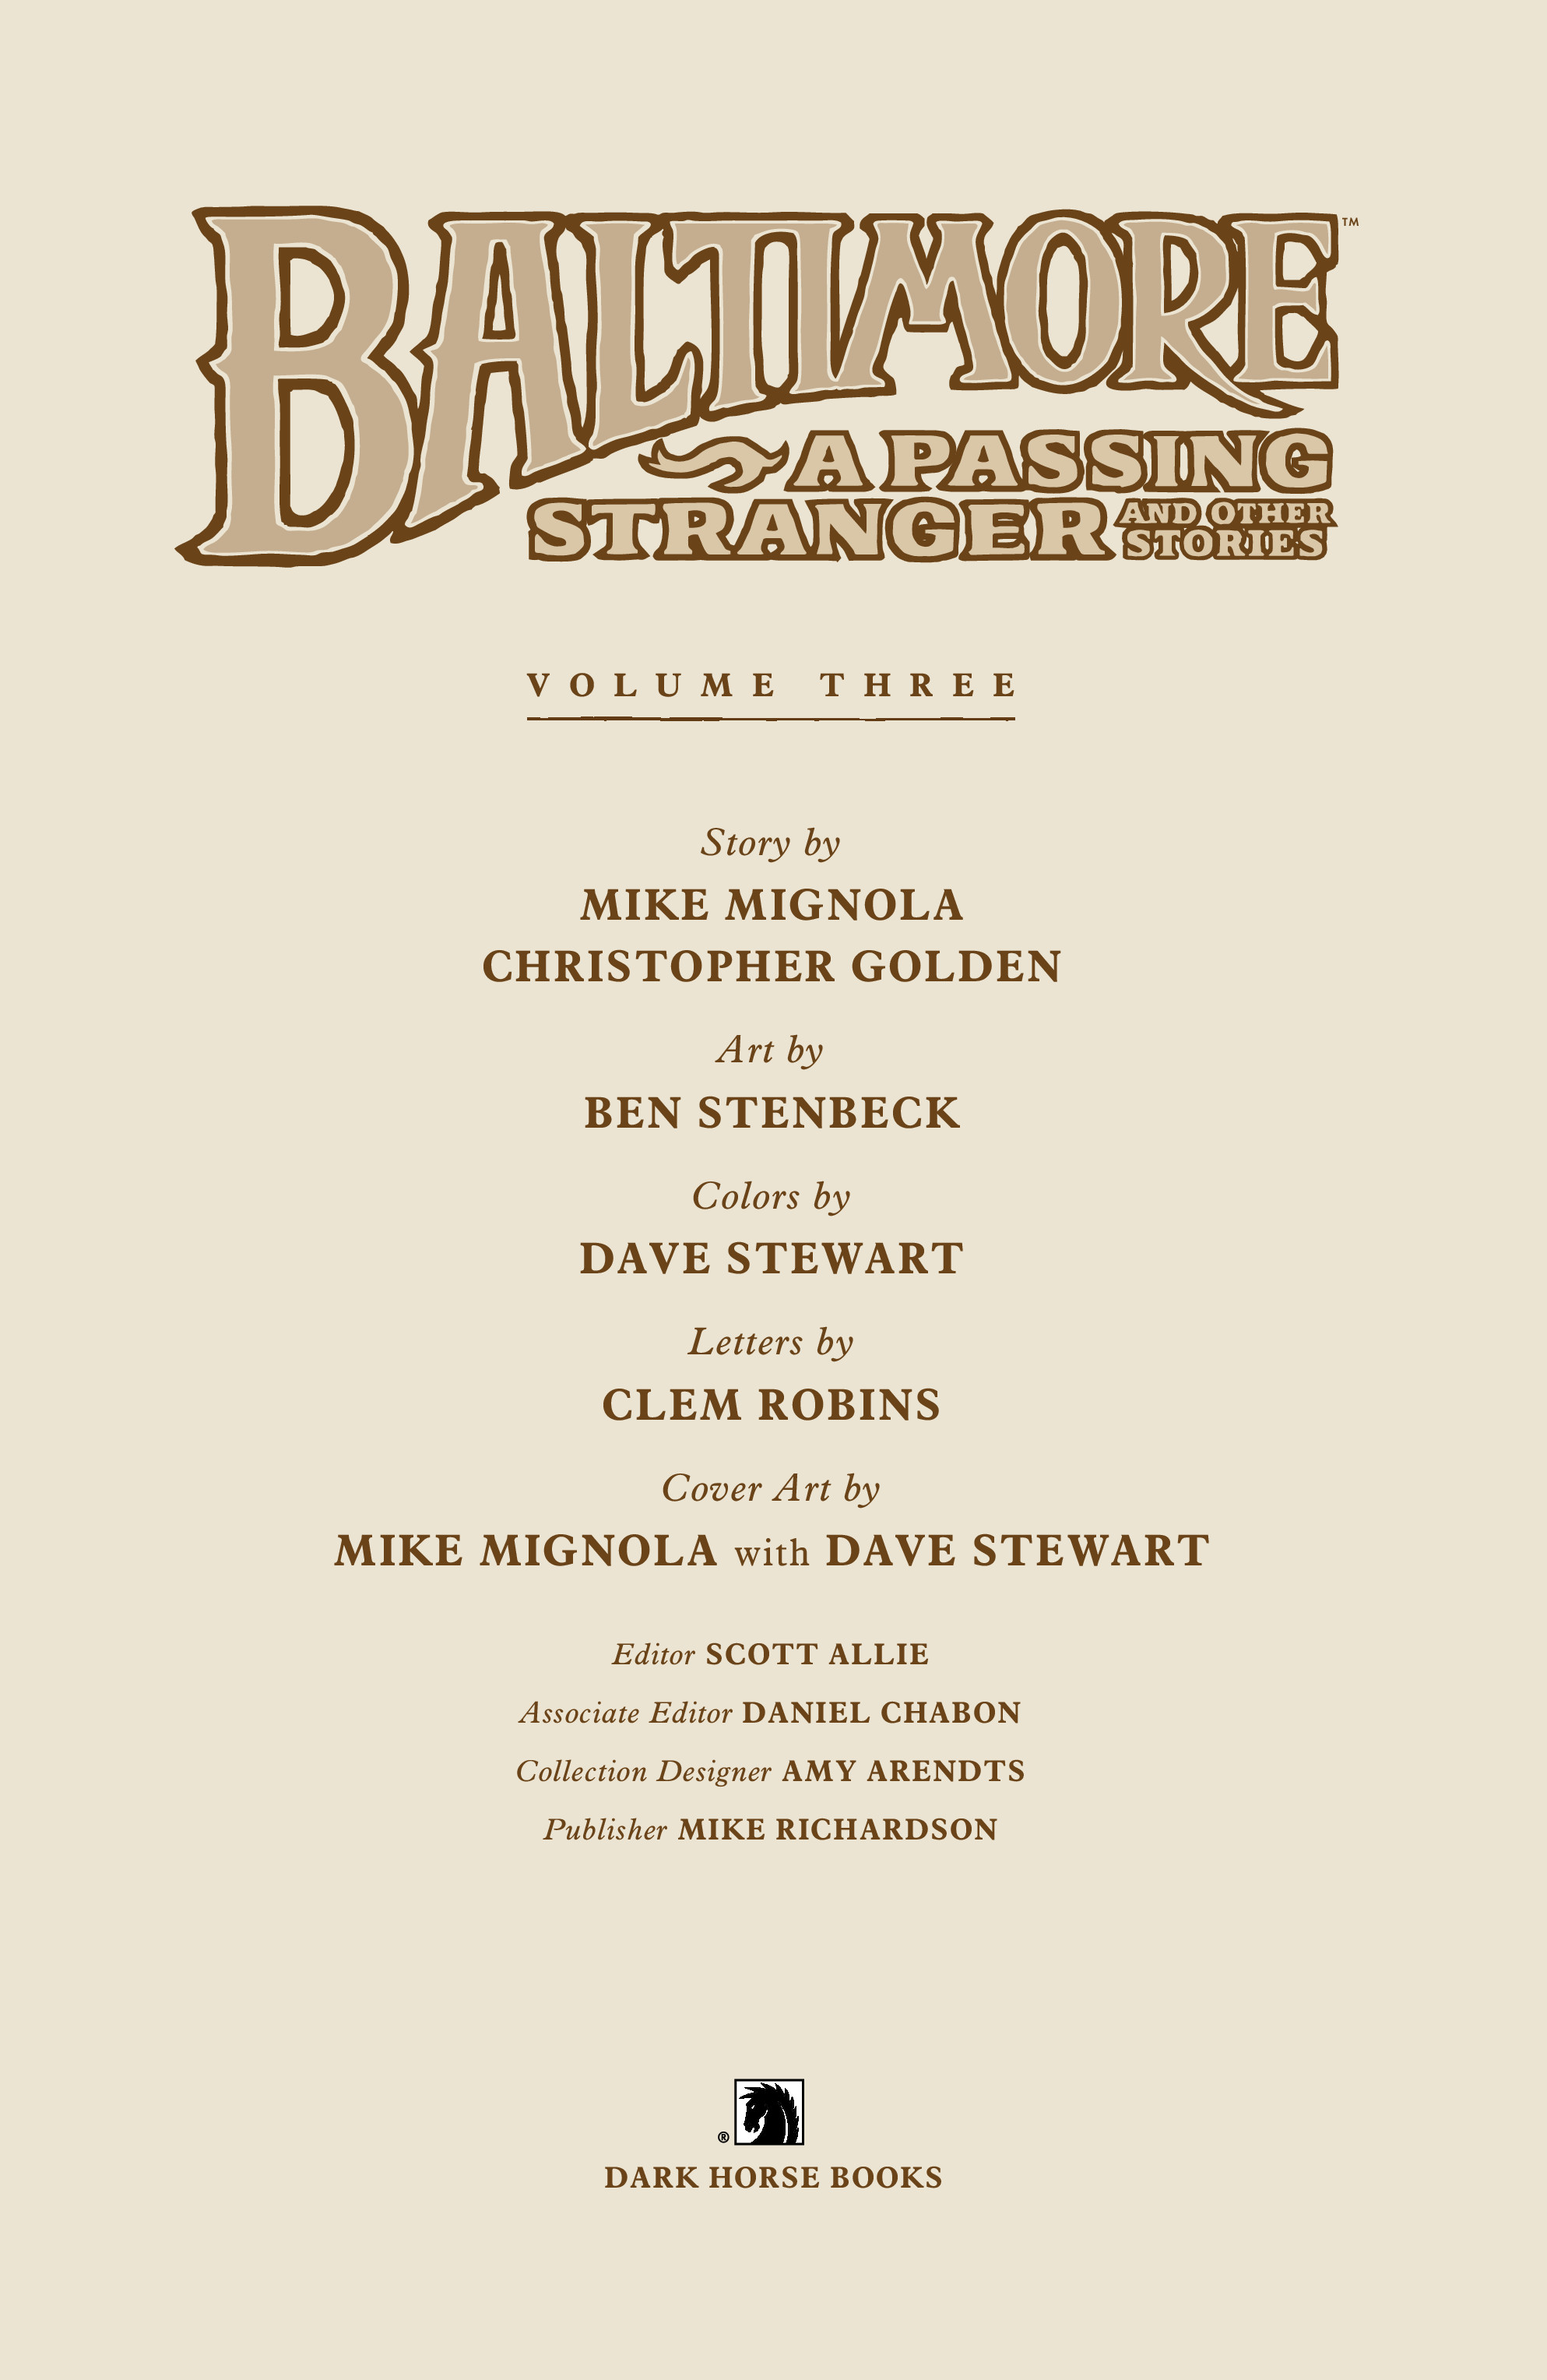 Read online Baltimore Volume 3: A Passing Stranger and Other Stories comic -  Issue # Full - 5